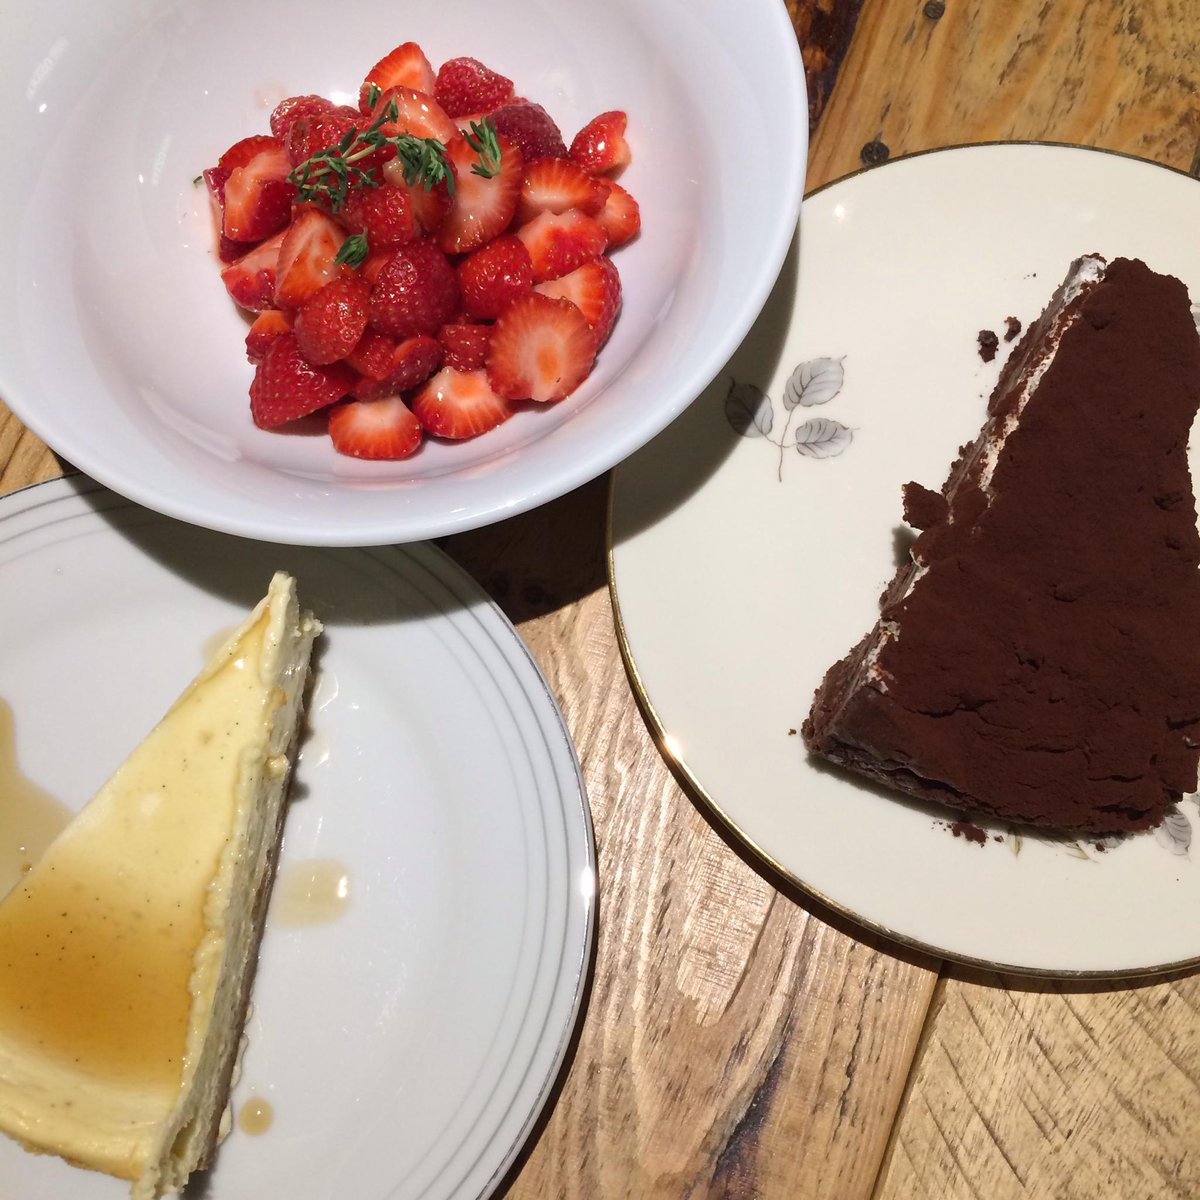 My pudding was 3 actually: mississippi mud pie, cheesecake, strawberries @abouttimemag @jellymalin #BeachPlease http://t.co/ebD5DgA7mc